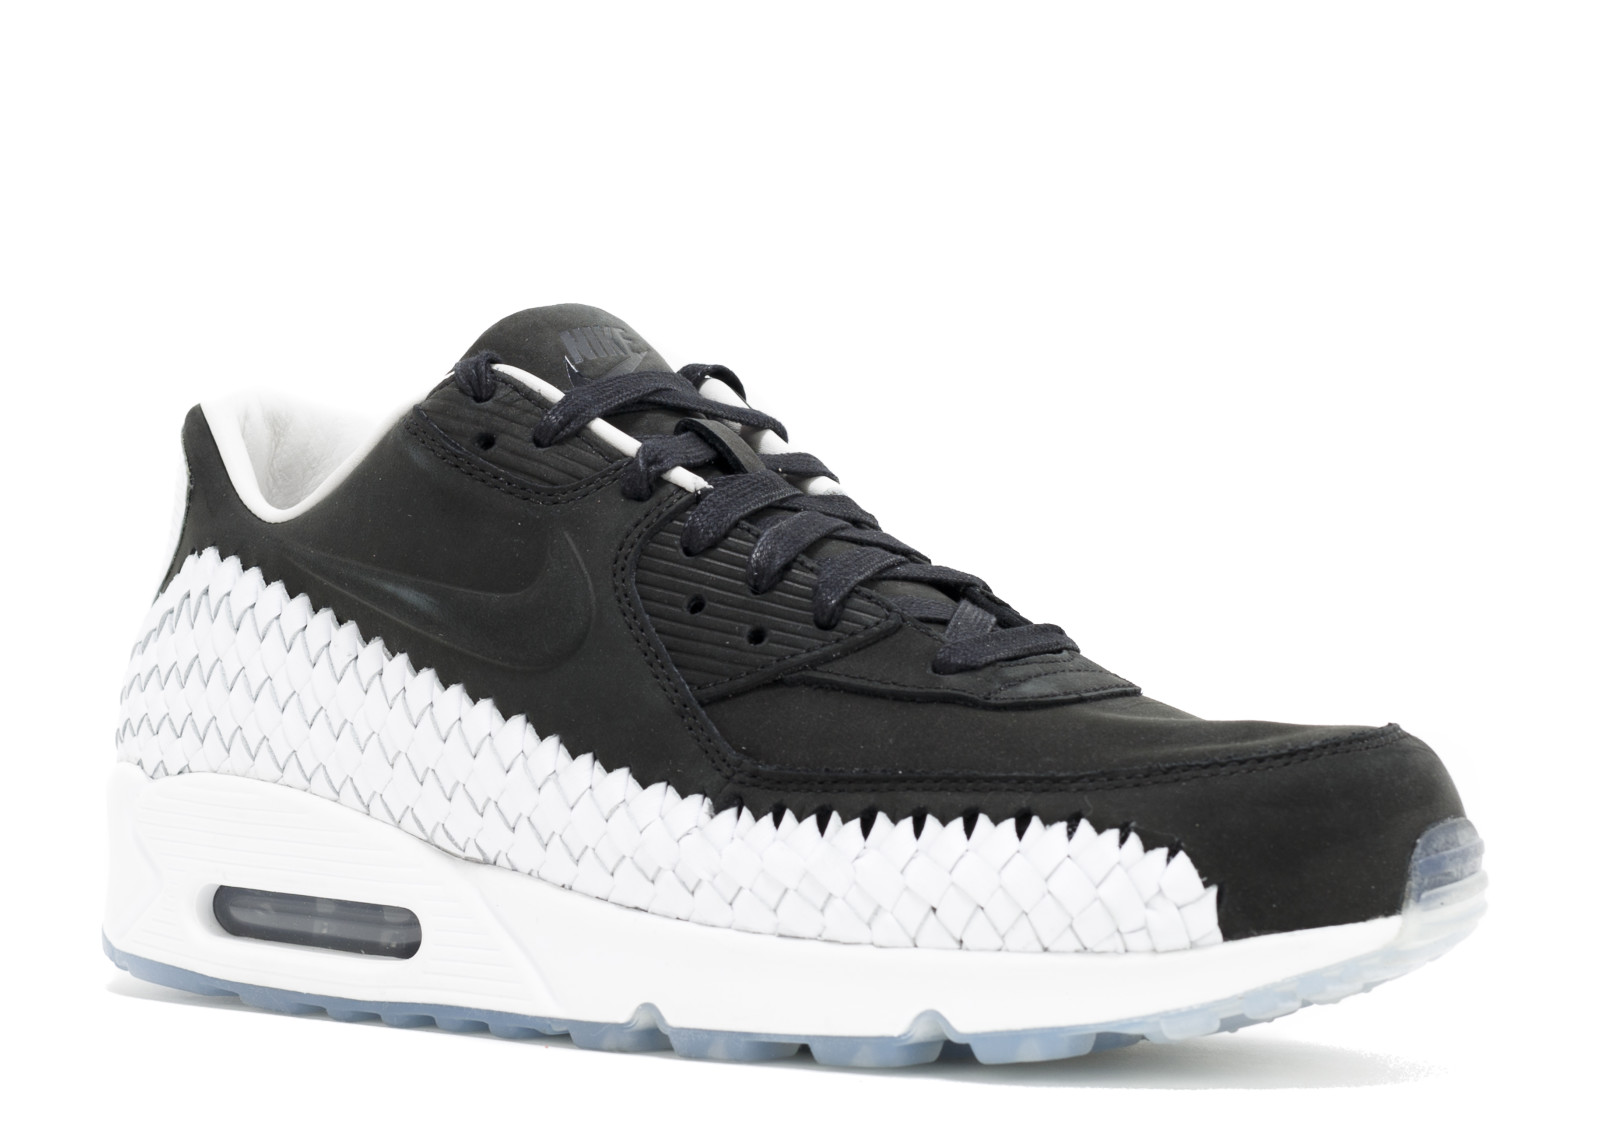 AIR MAX 90 WOVEN - 833129-003 Shoes that are both comfortable and beautiful and eye-catching